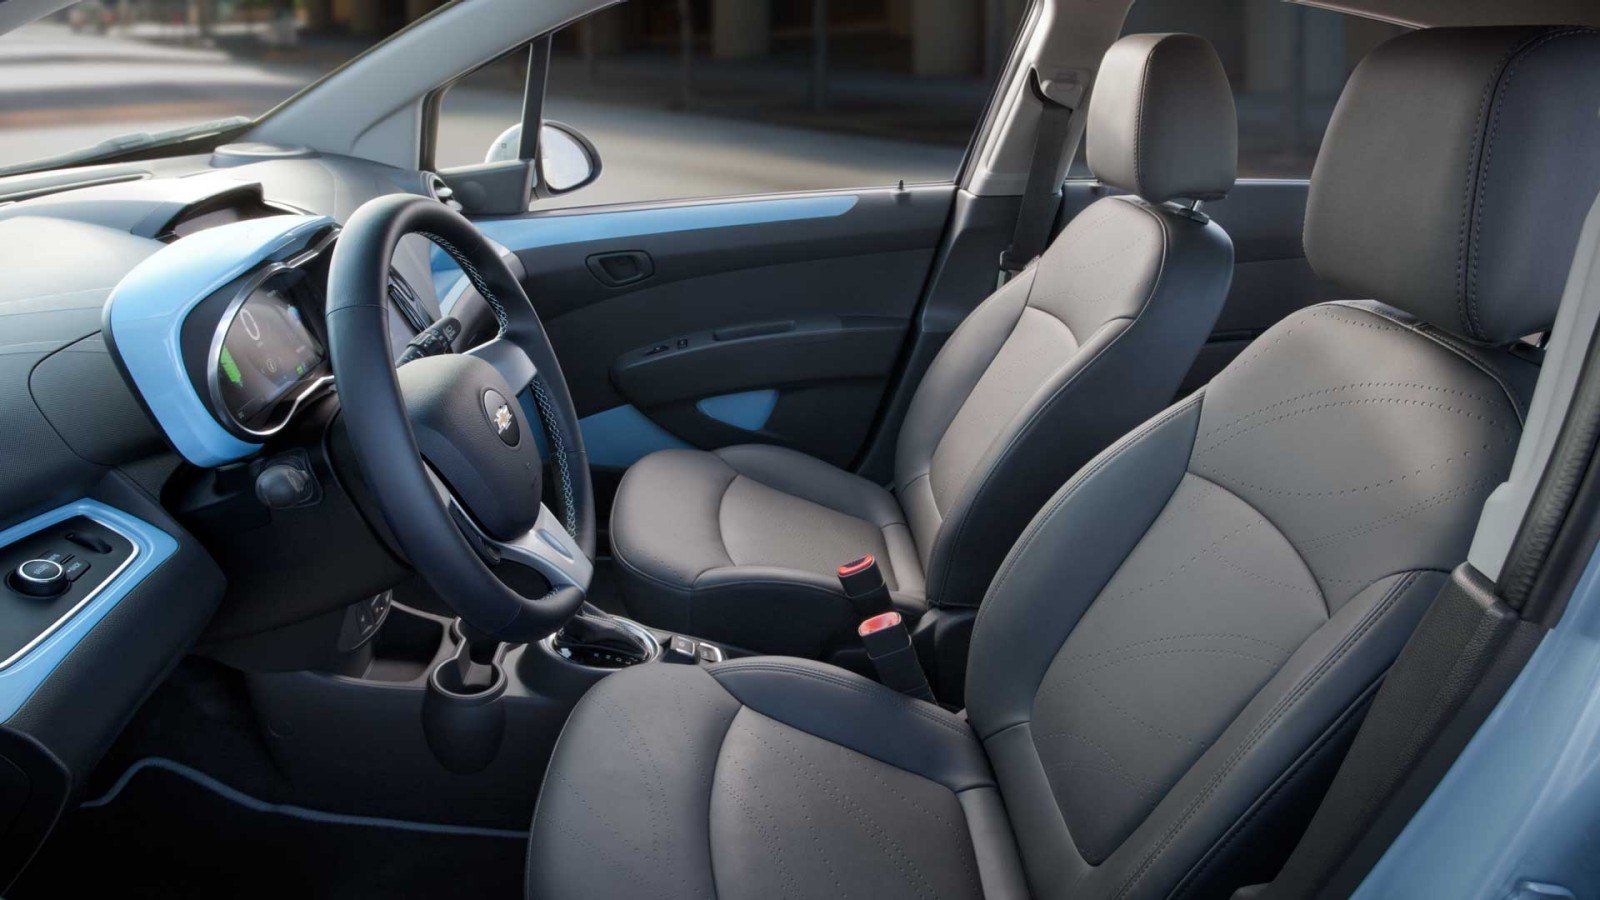 2015 Chevy Spark EV Review, Accessories, Colors, MPG, Specs, HP